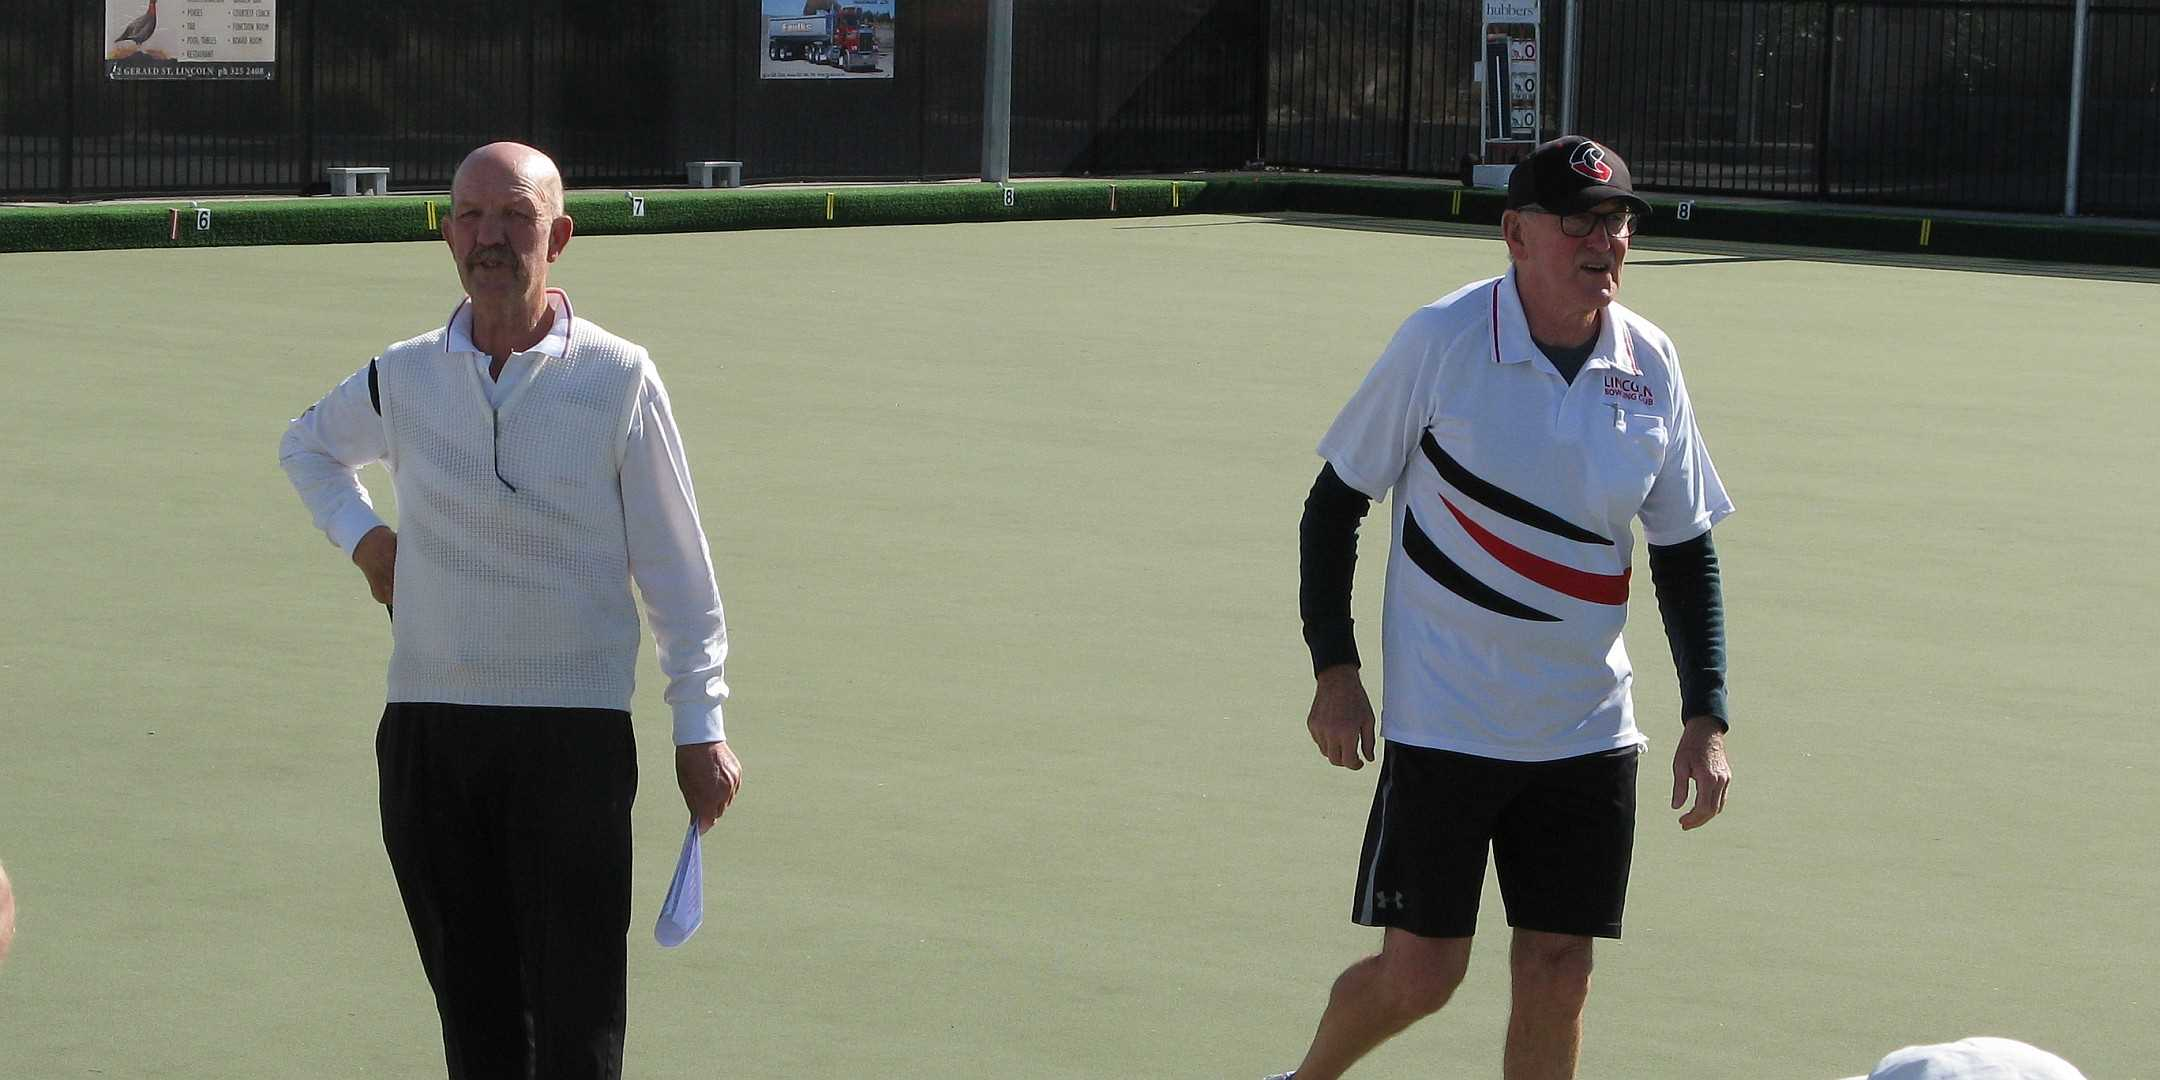 Bruce (Match Committee Chair) and Maurice (President) get the Farmers v Rest under way - 24 April 2021